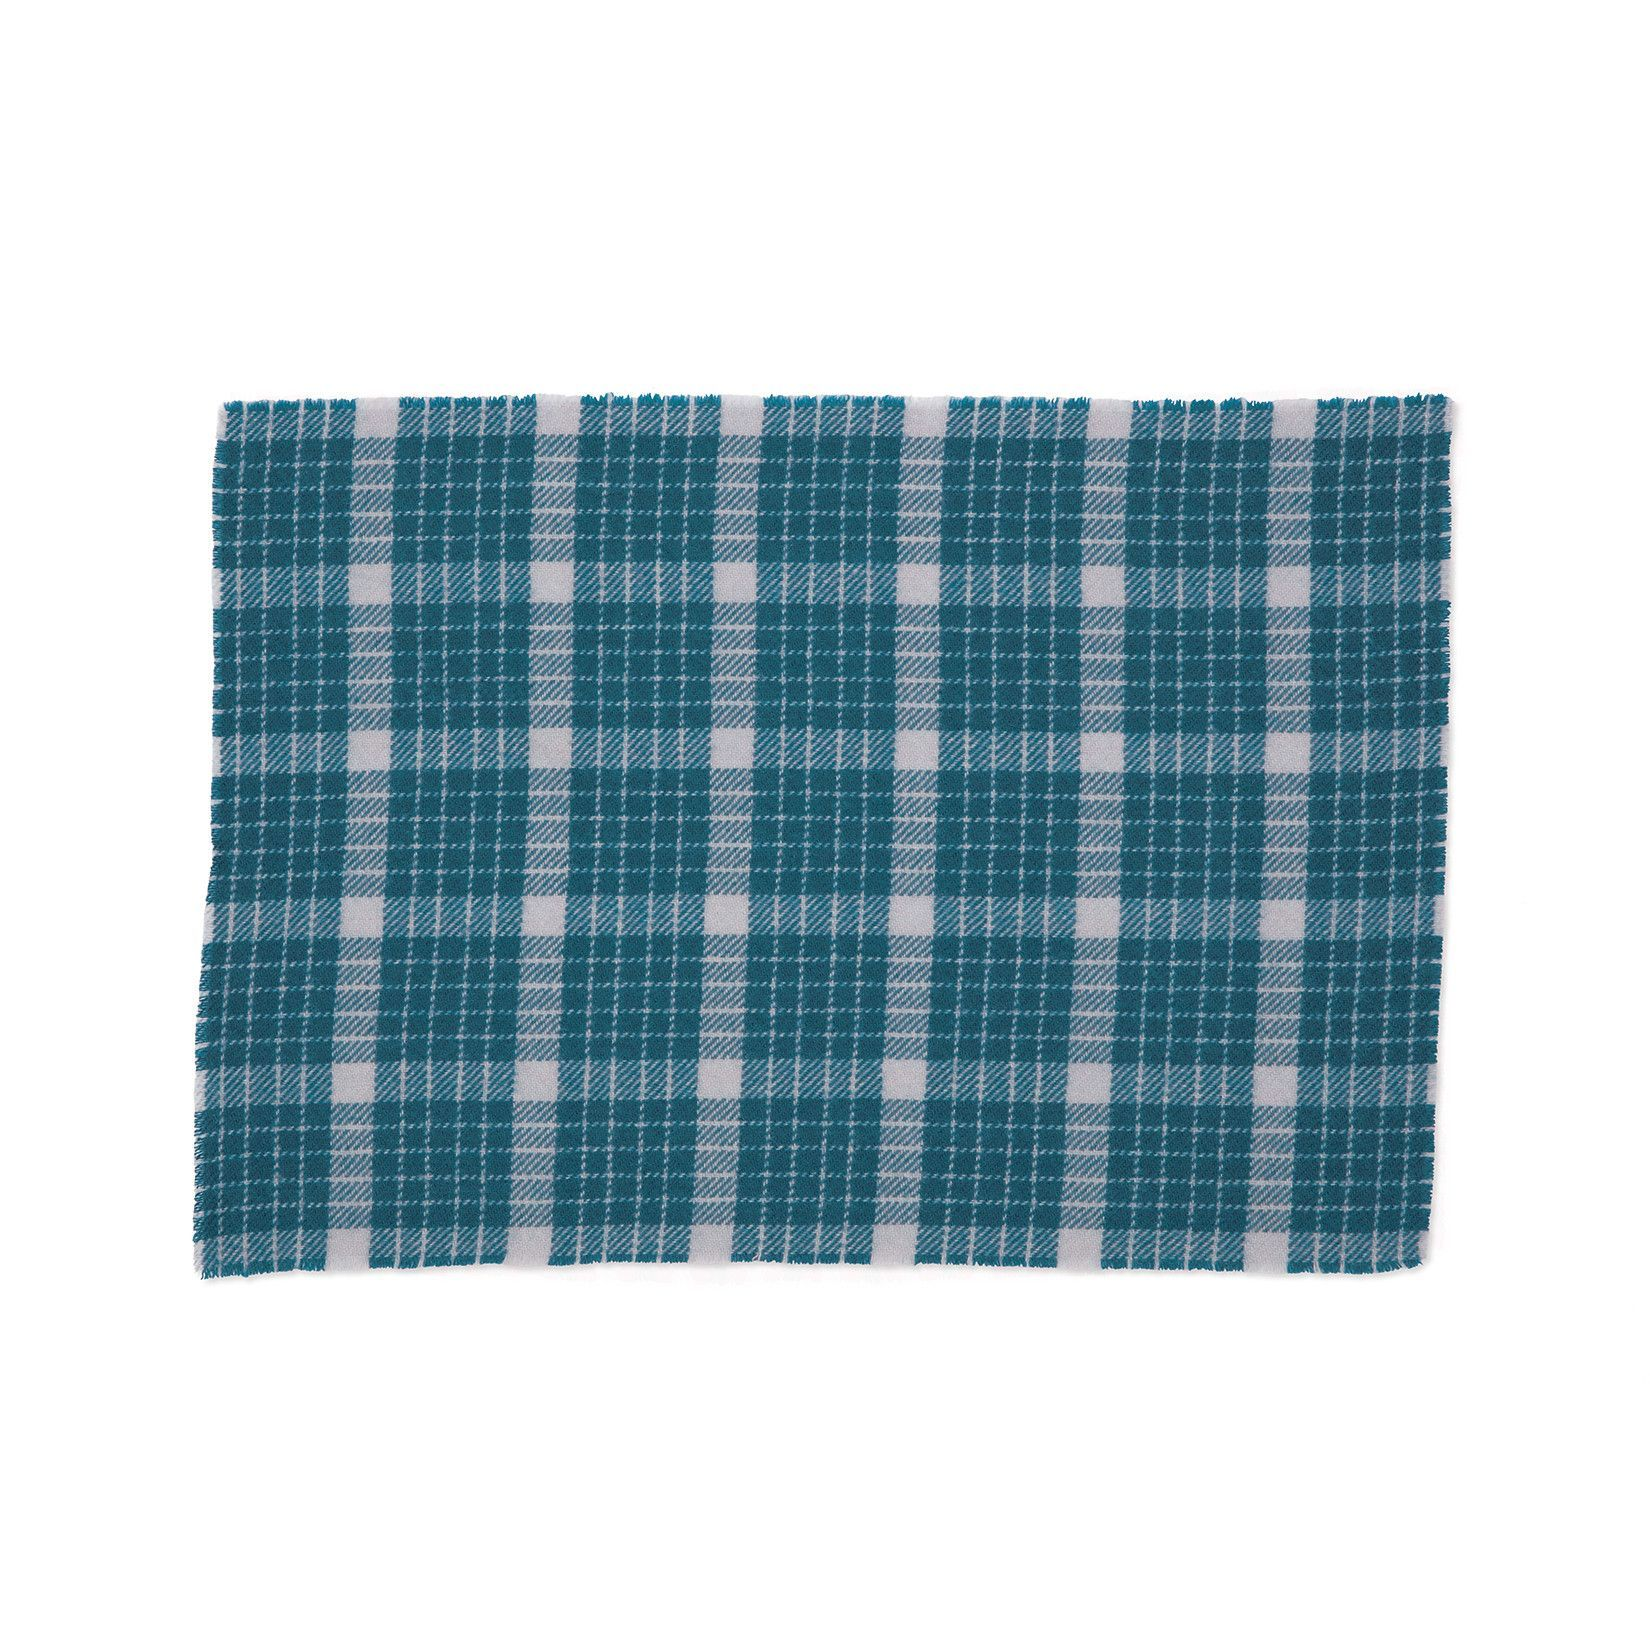 Hastings Plaid Wool Placemat